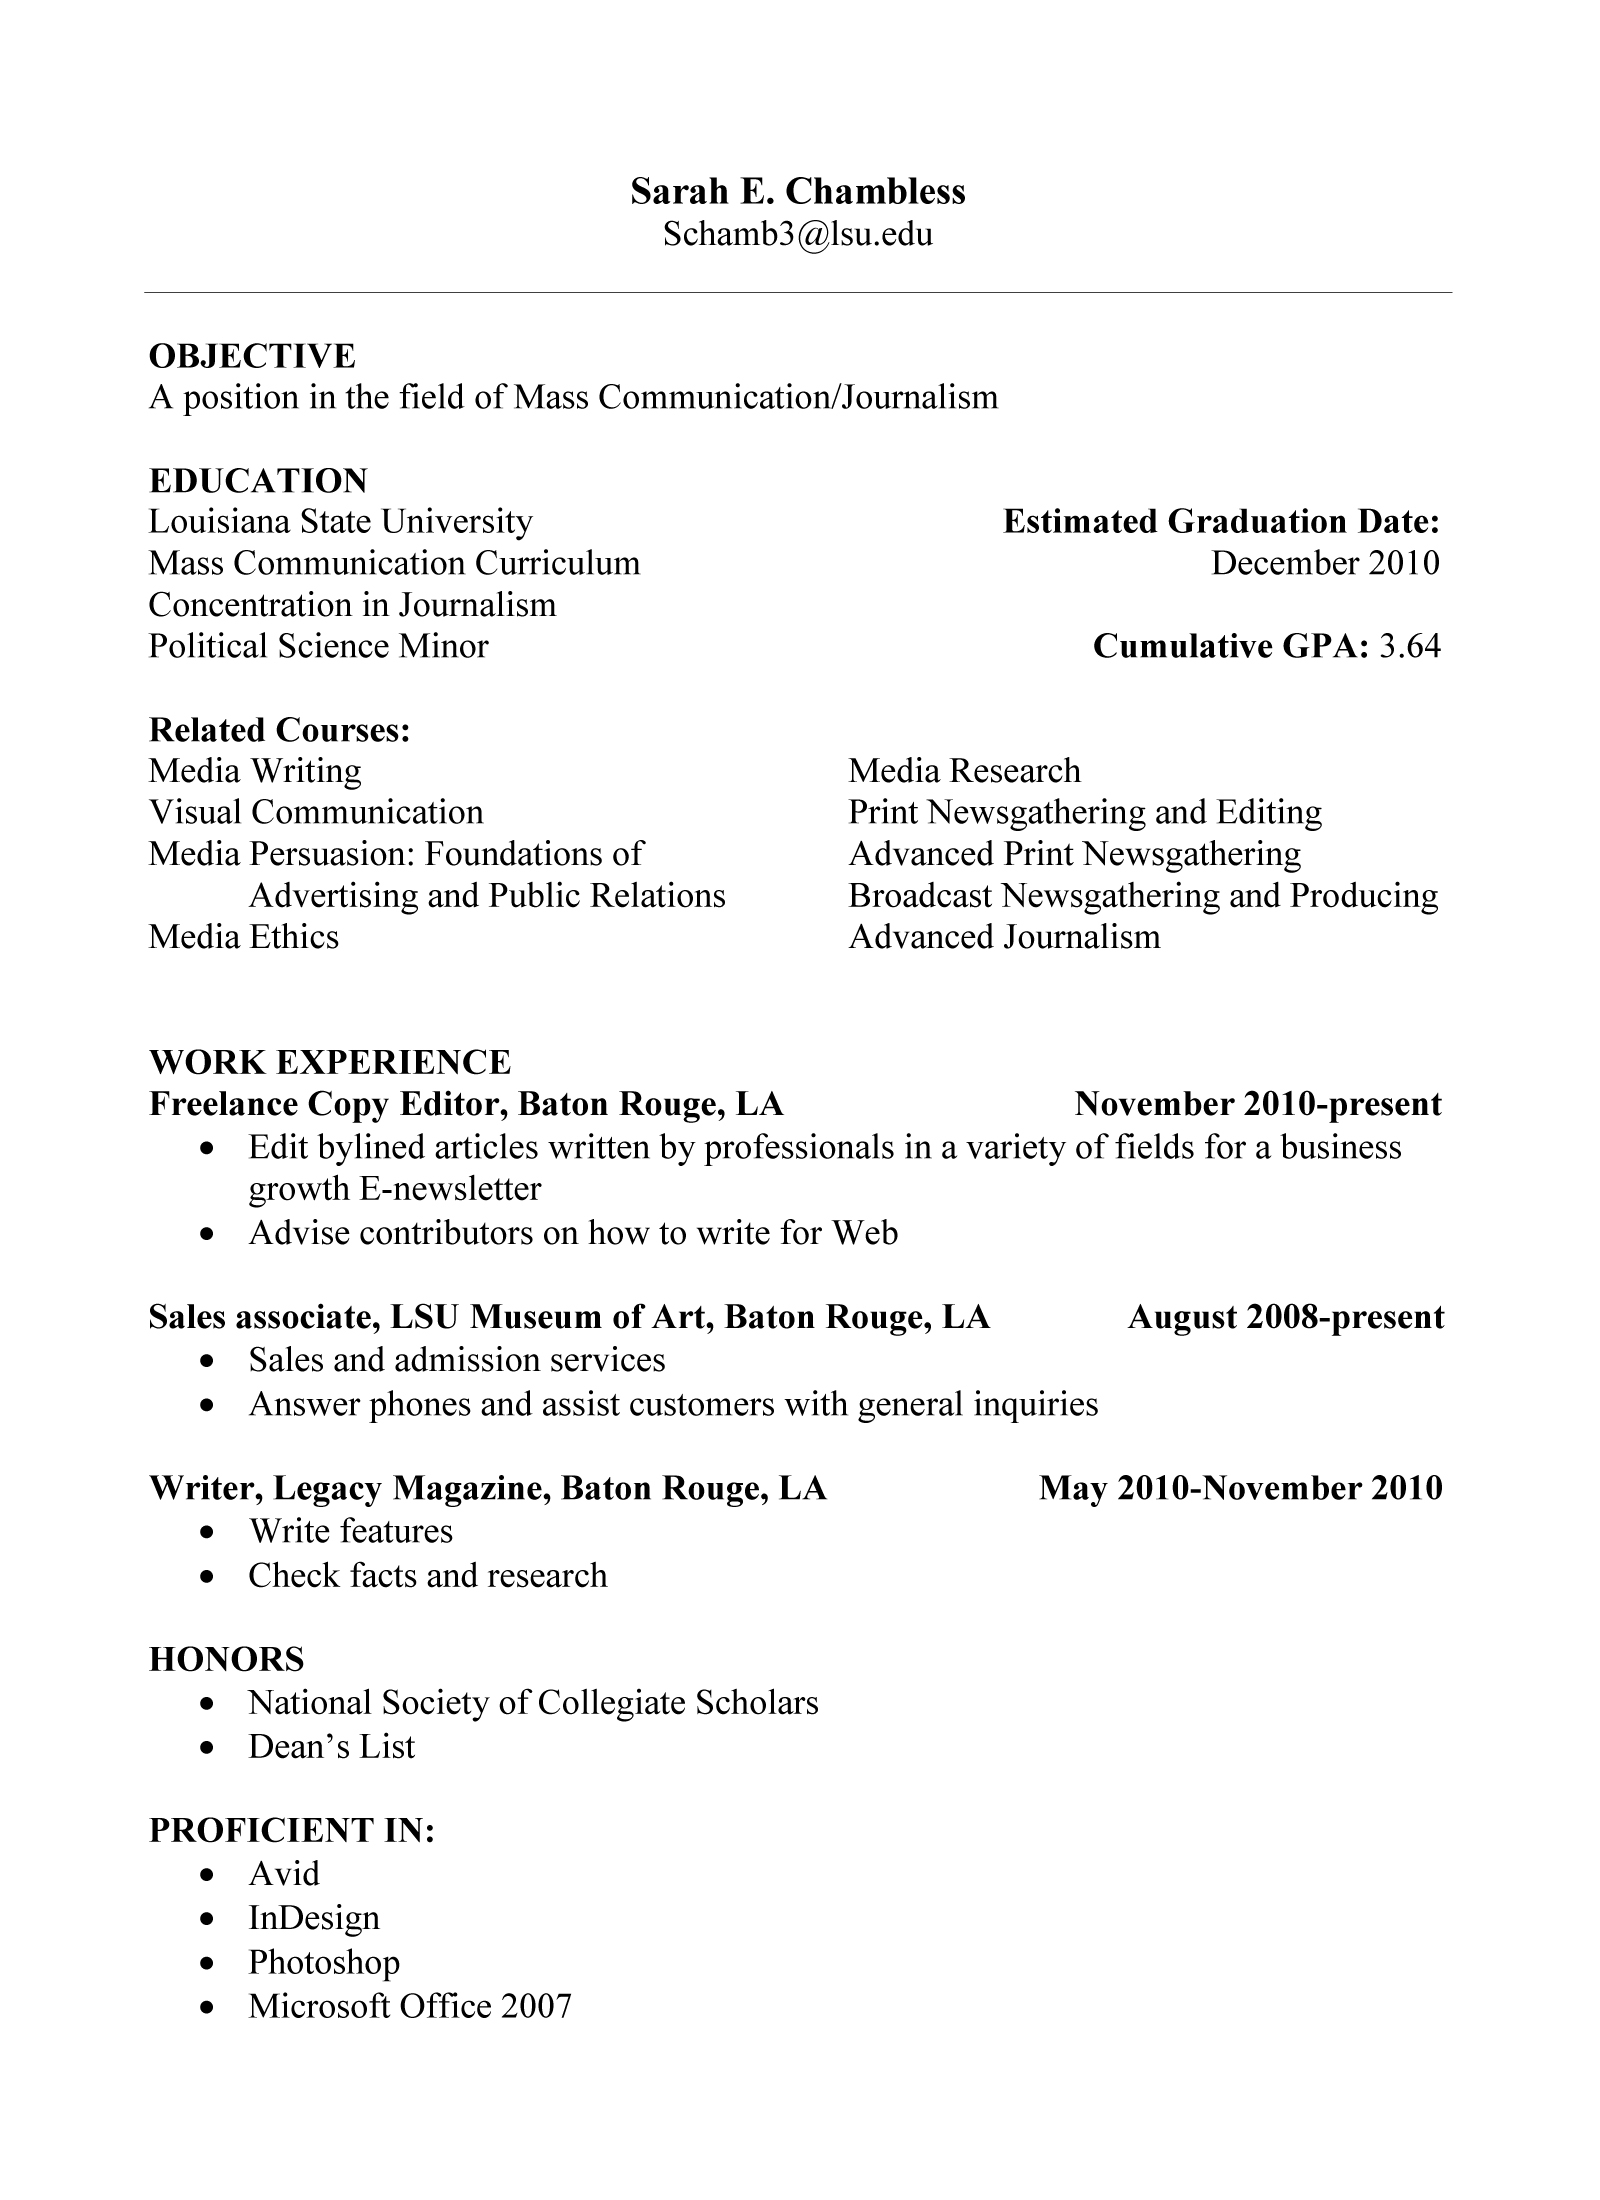 coursework on a resume verbs related post of construction supervisor oil gas industry resume samples - How To Write A High School Resume For College